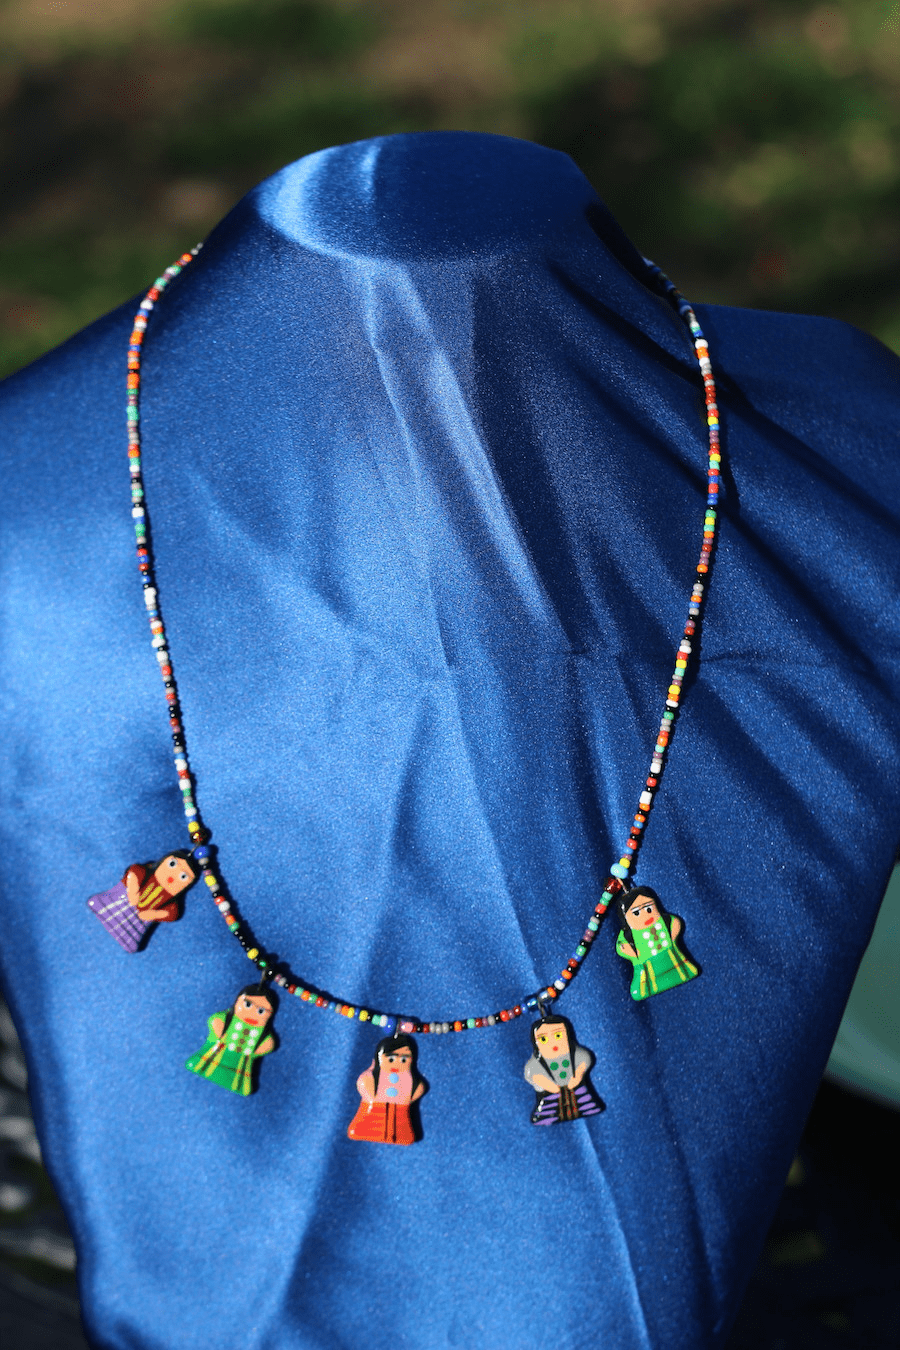 GUATEMALAN NECKLACE - VILLAGE PEOPLE